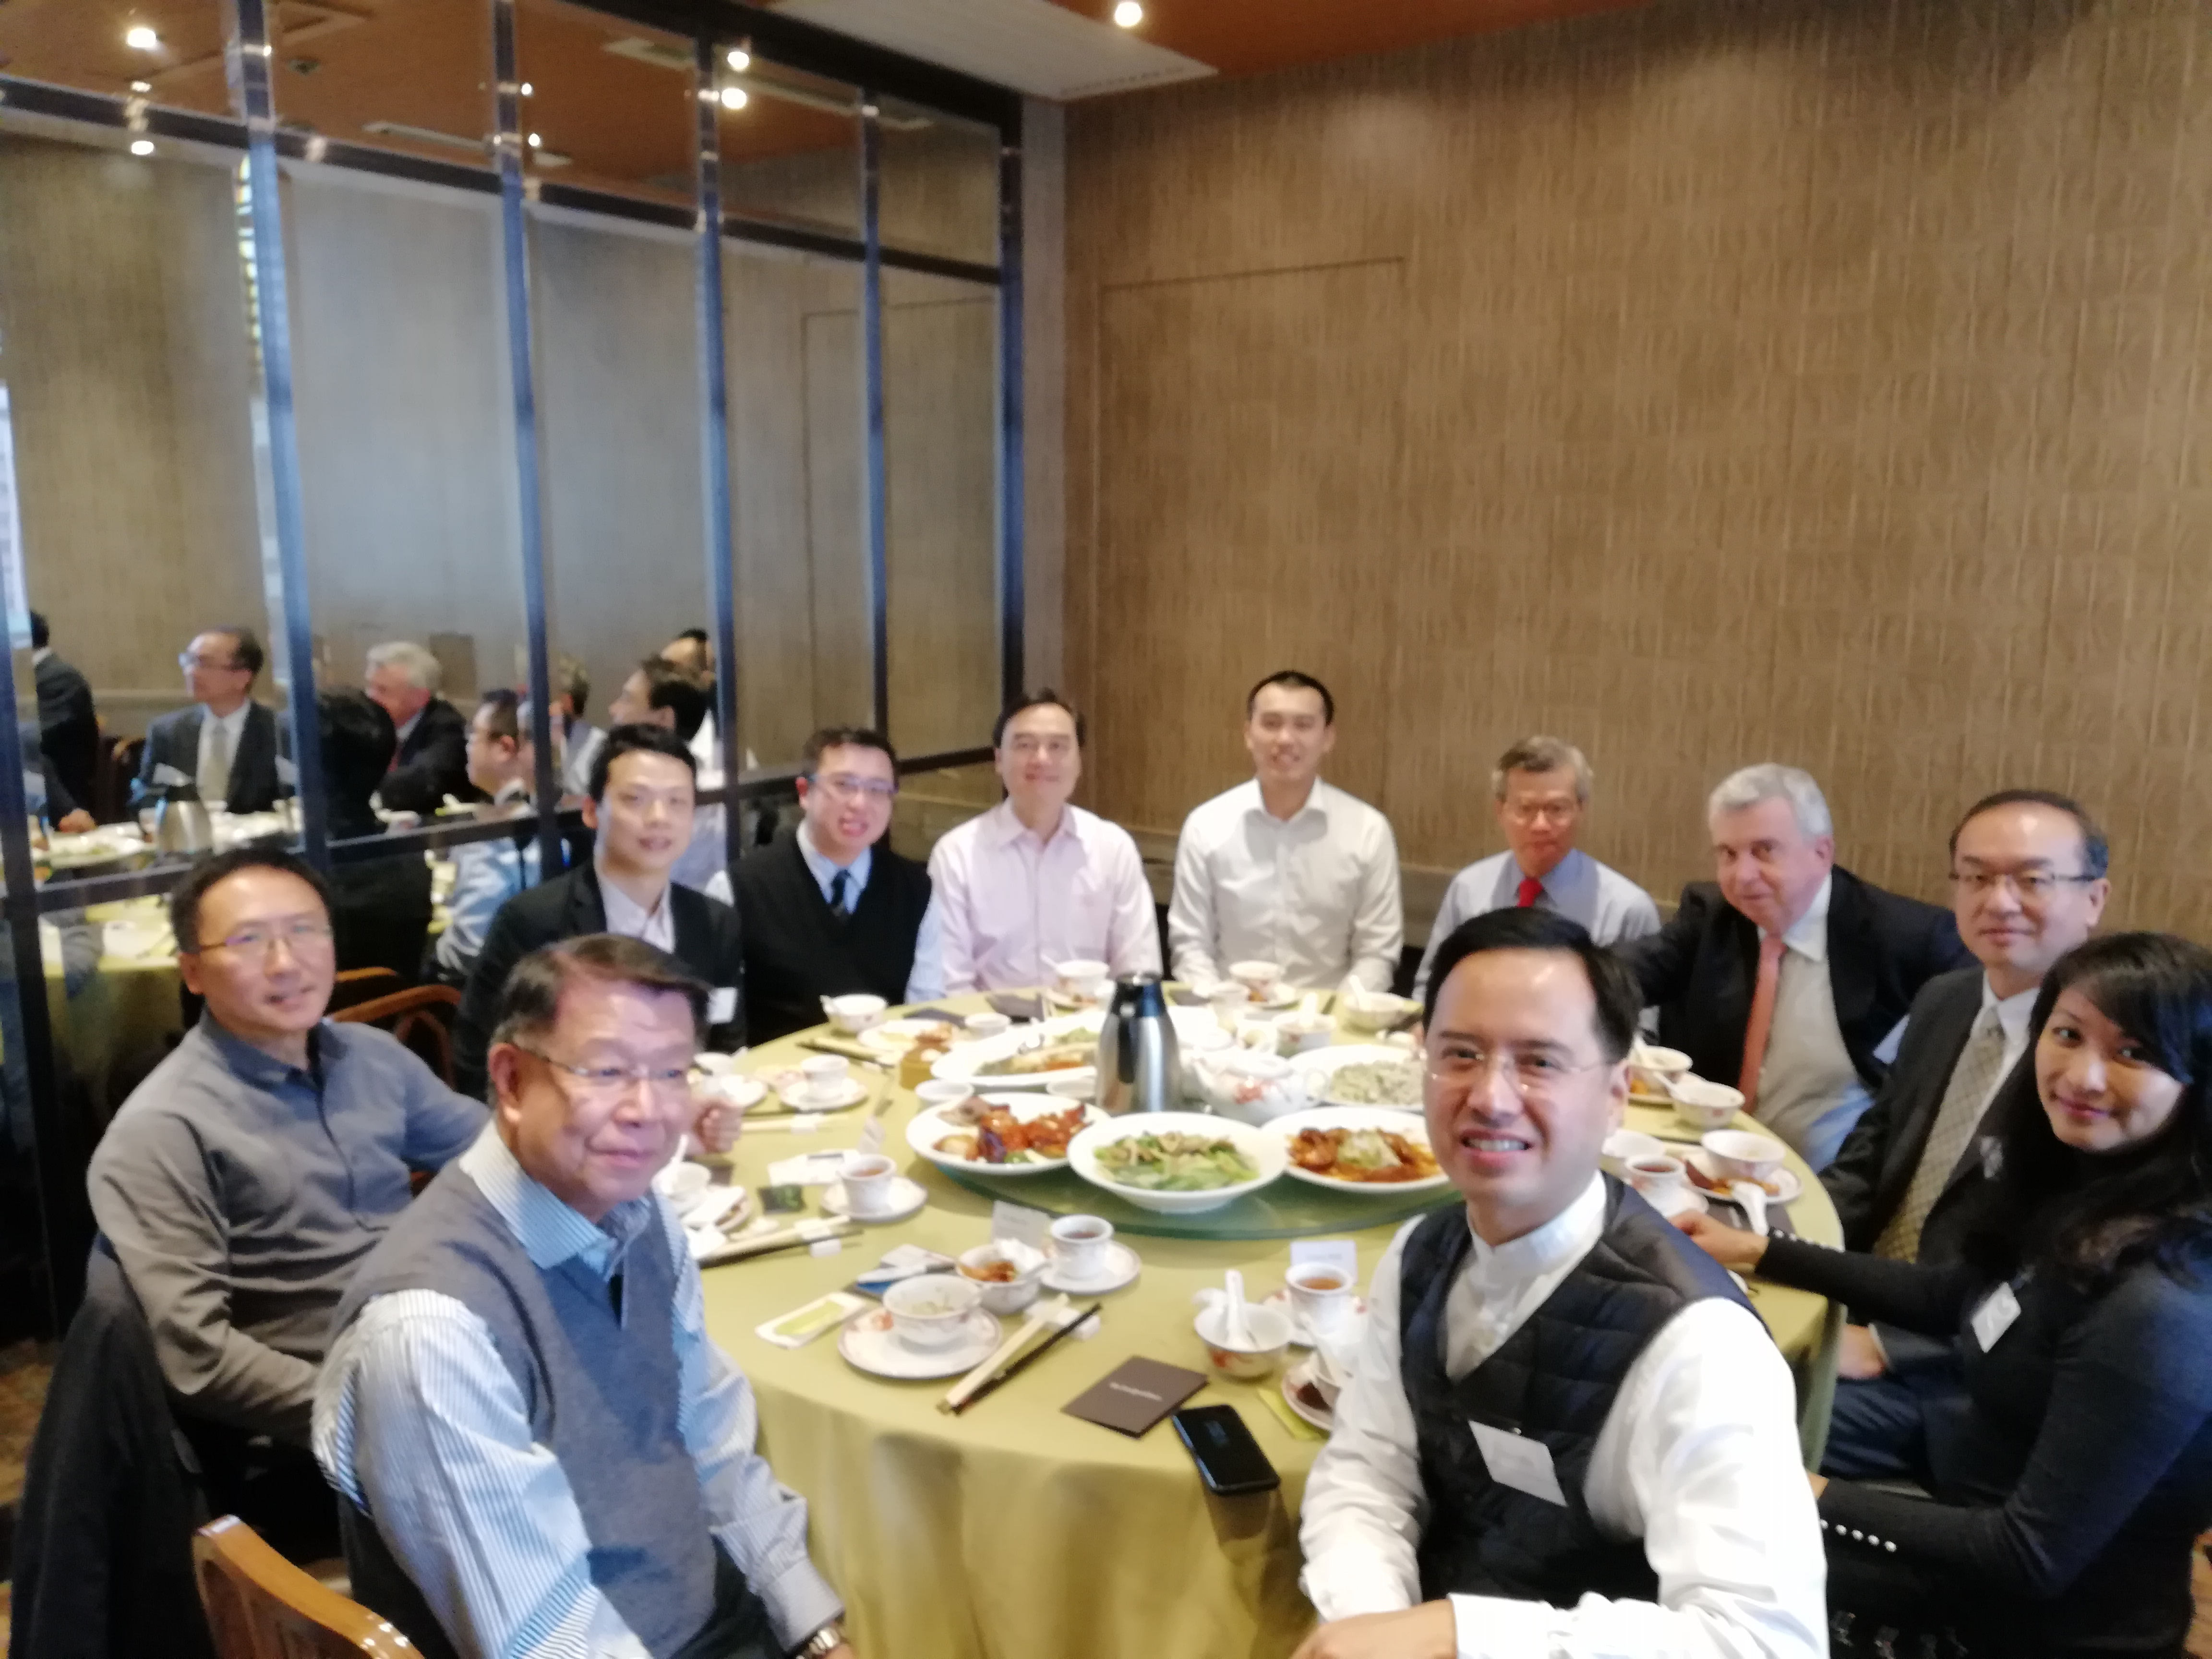 ASIA CEO COMMUNITY - CEO ROUNDTABLE